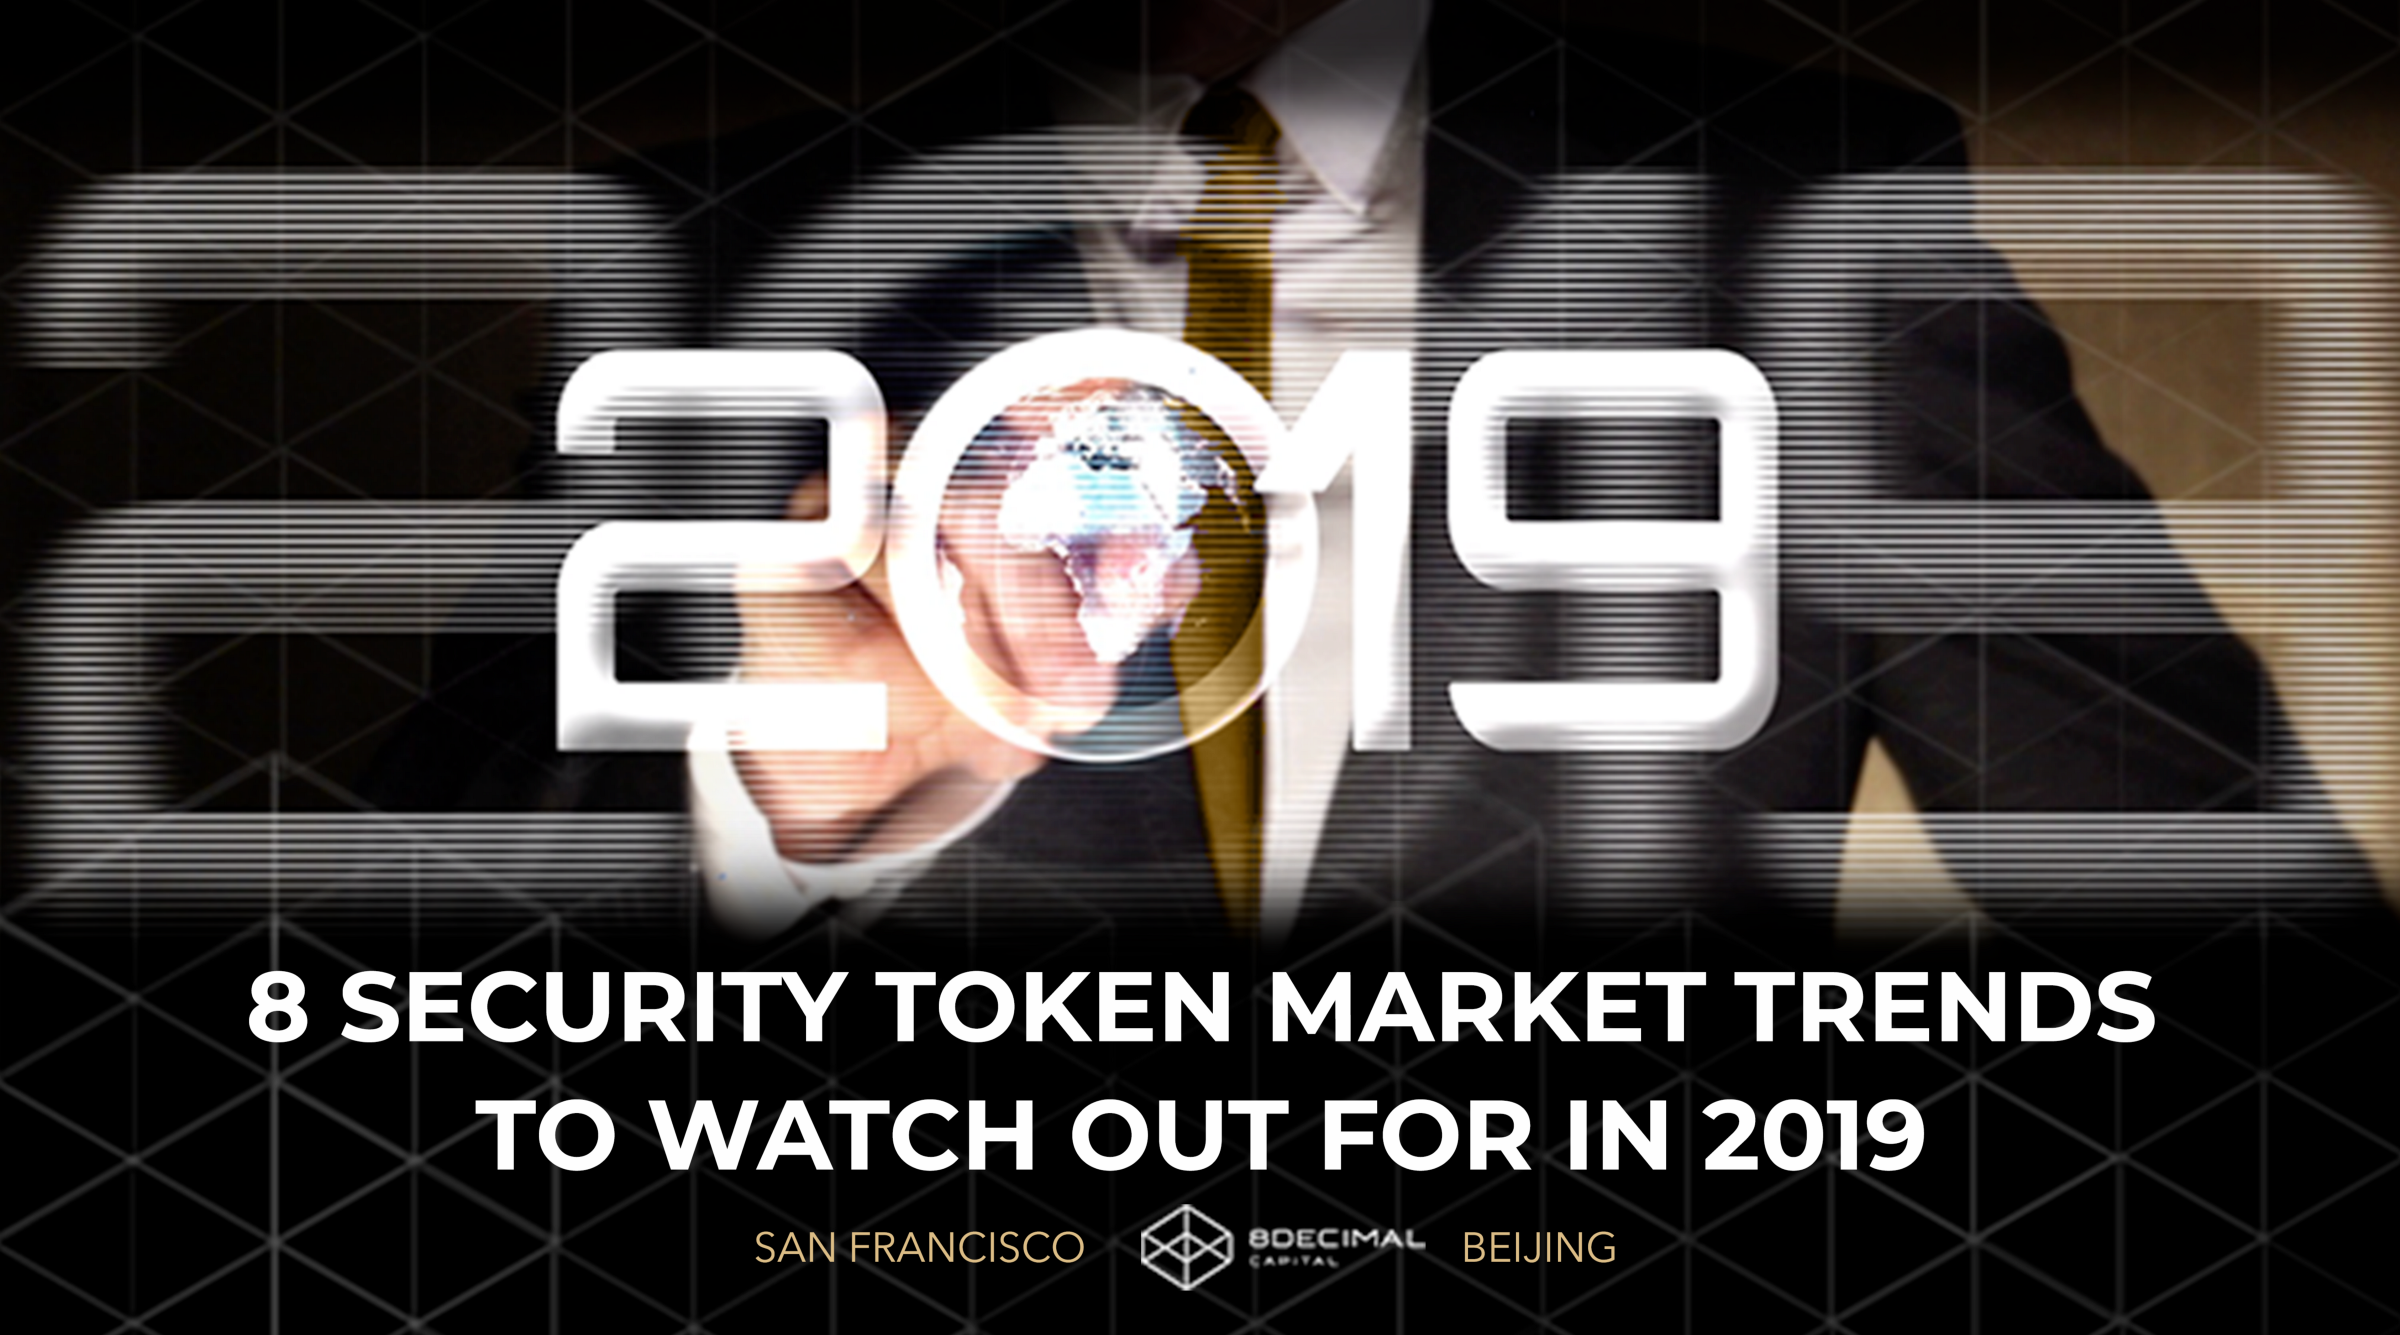 /8-security-token-market-trends-to-watch-out-for-in-2019-718f8b7652cd feature image